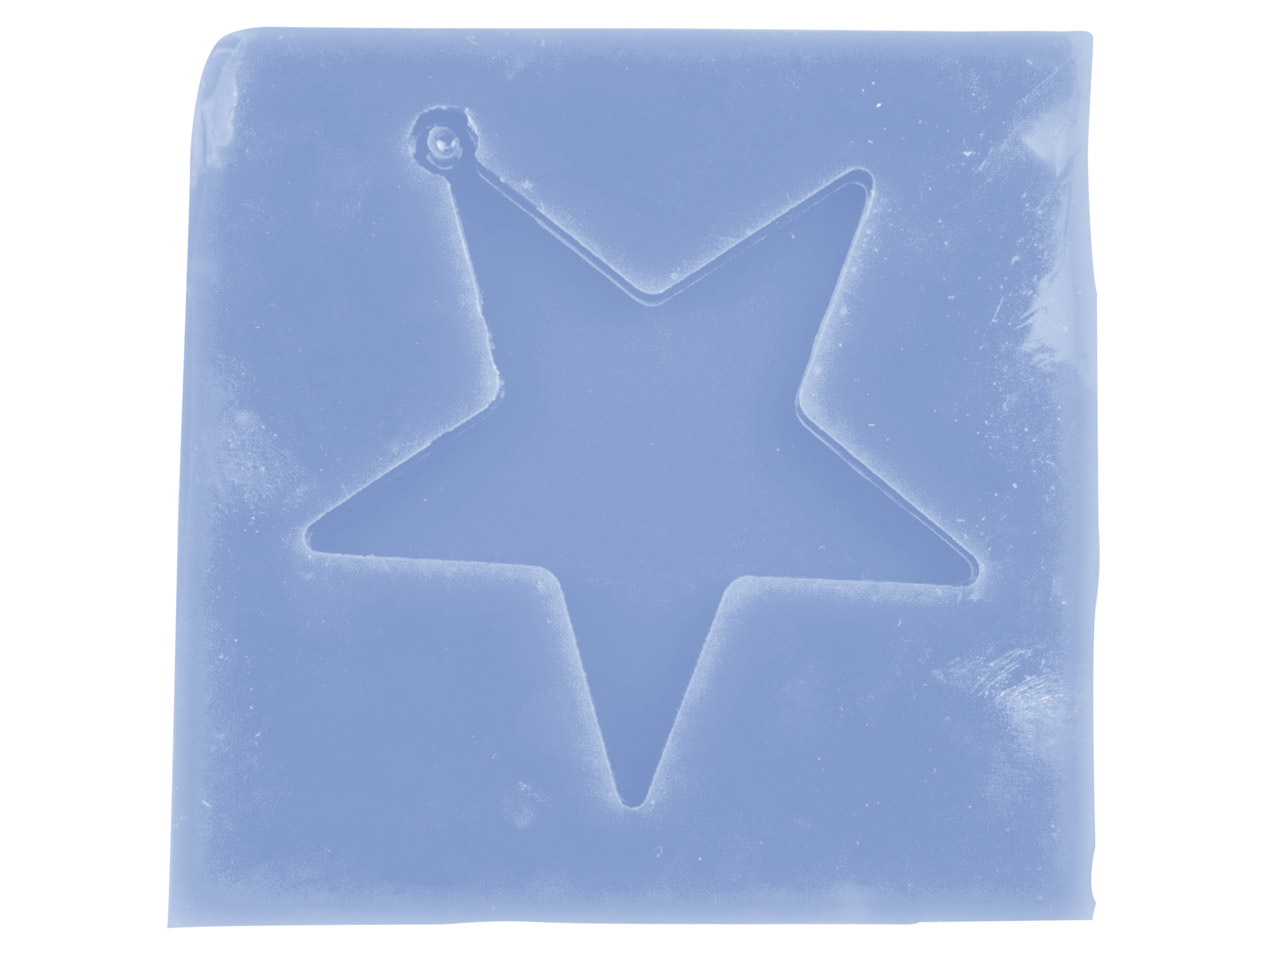 Silicone Star Decoration Mould For Resin Casting, 7x7.5cm